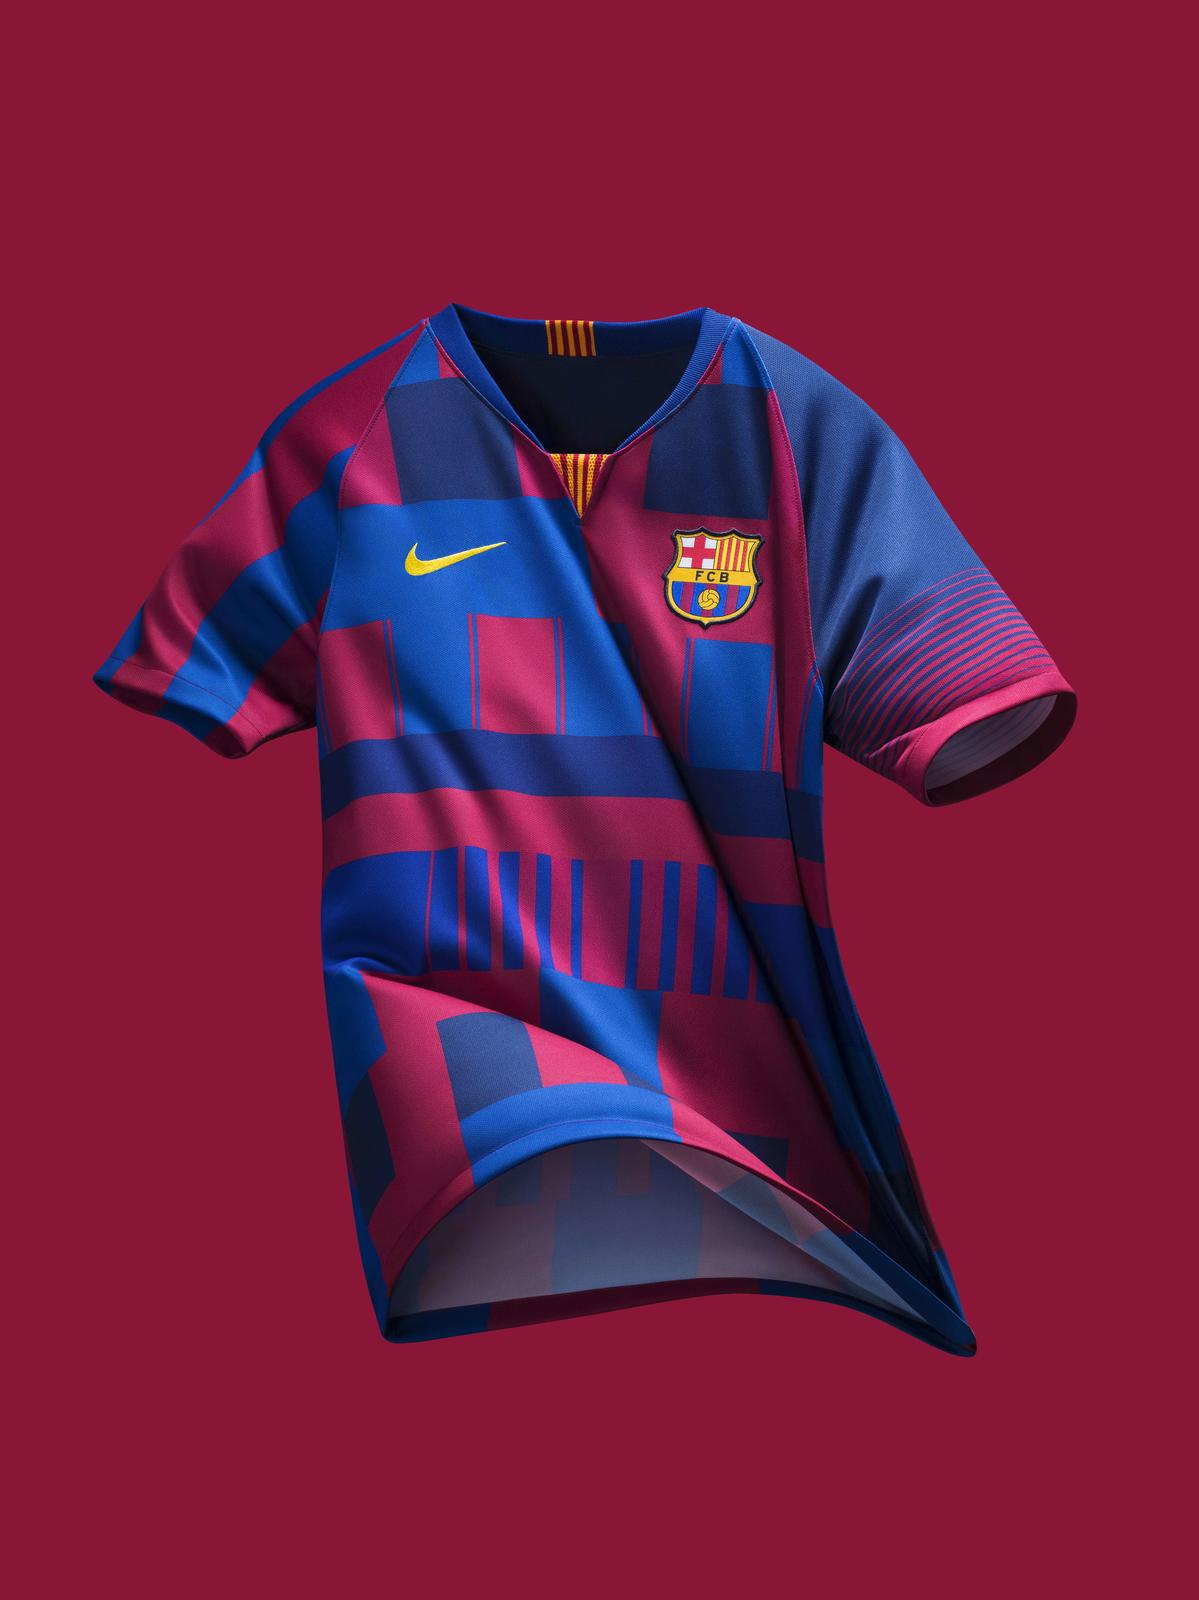 FC Barcelona What The 20th Anniversary Jersey - Nike News eab31e1d2